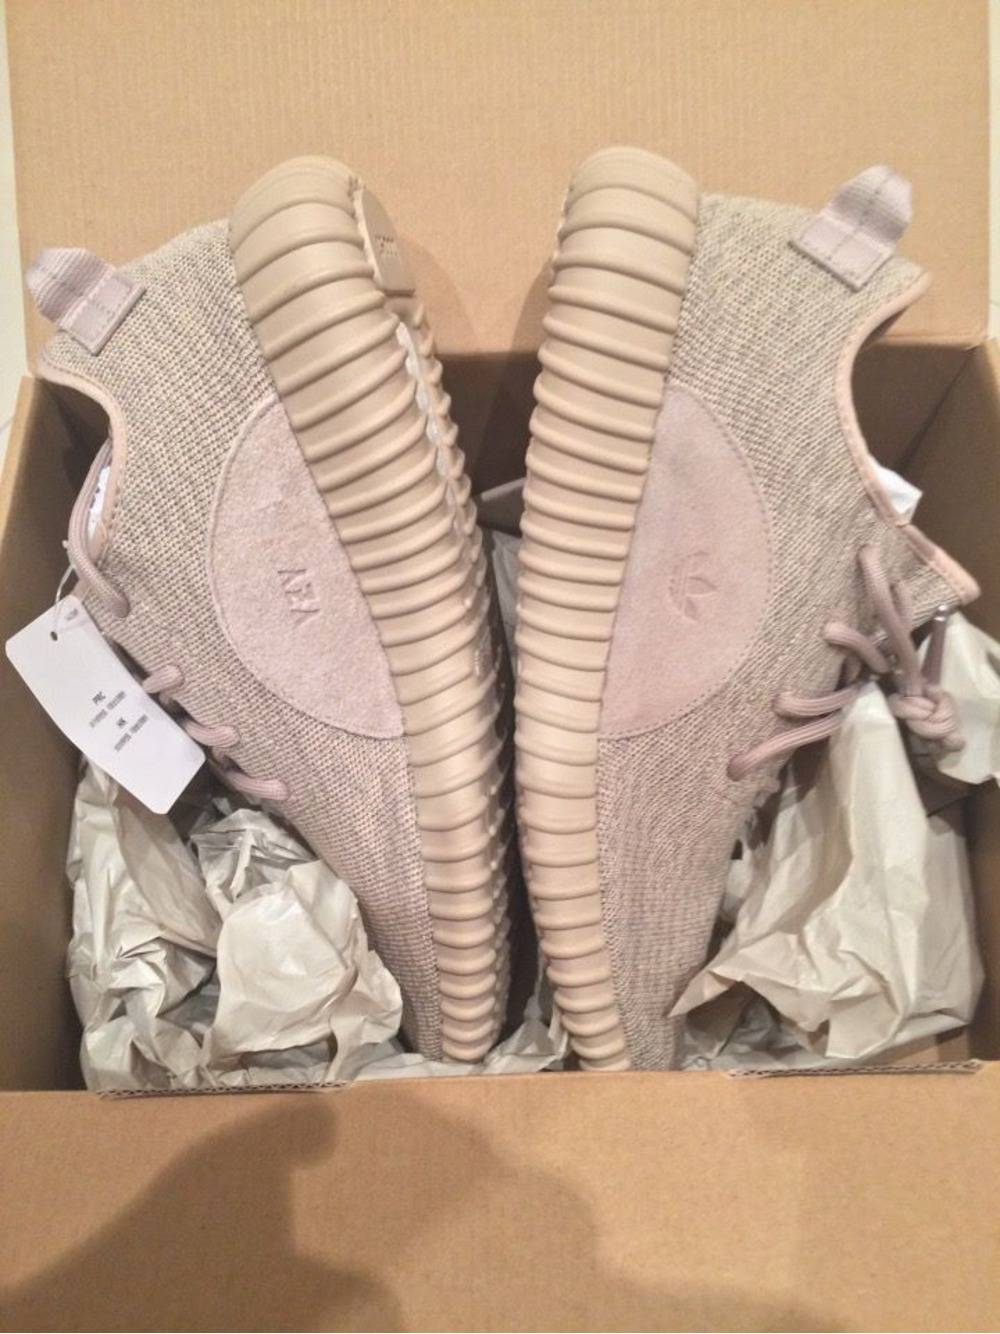 Adidas Yeezy boost 350 Oxford Tan US 9.5 BOX FRESH ...